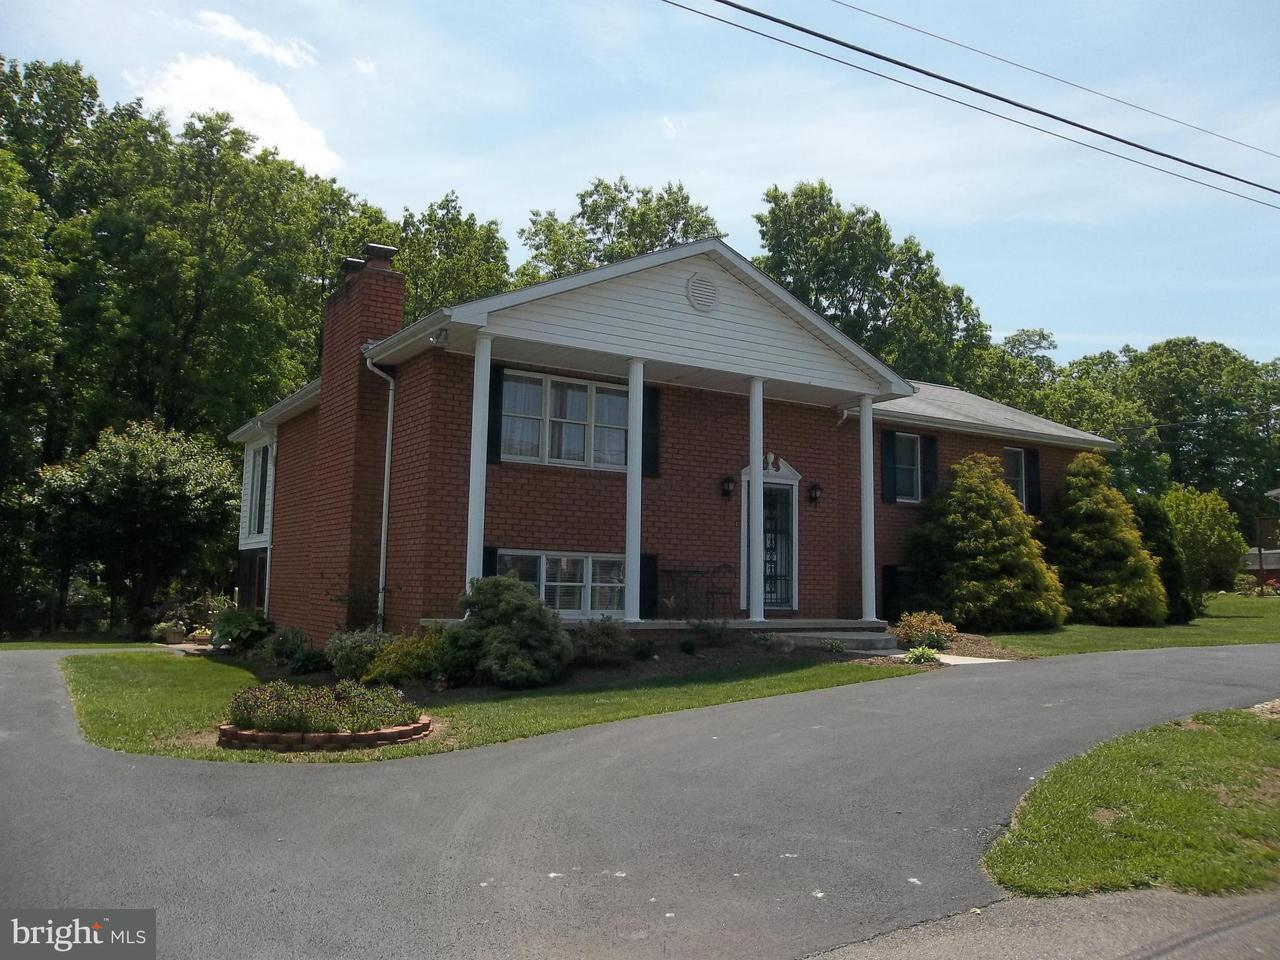 Single Family for Sale at 262 Roseanna St Wiley Ford, West Virginia 26767 United States